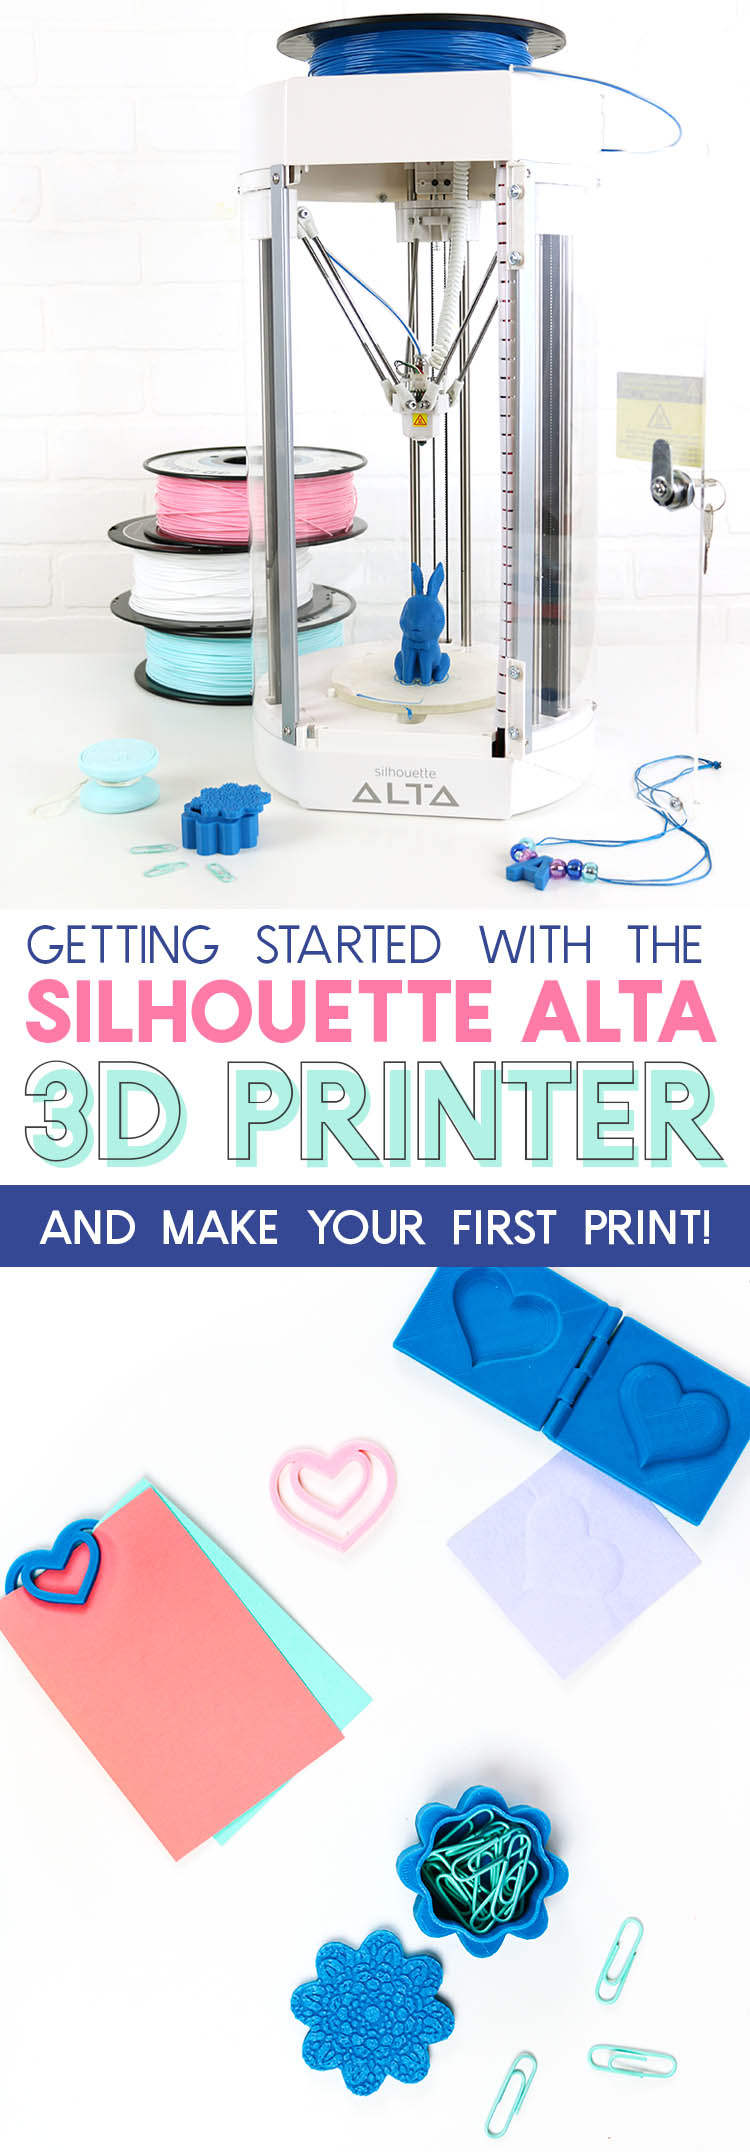 getting started with the silhouette alta 3d printer and making your first print